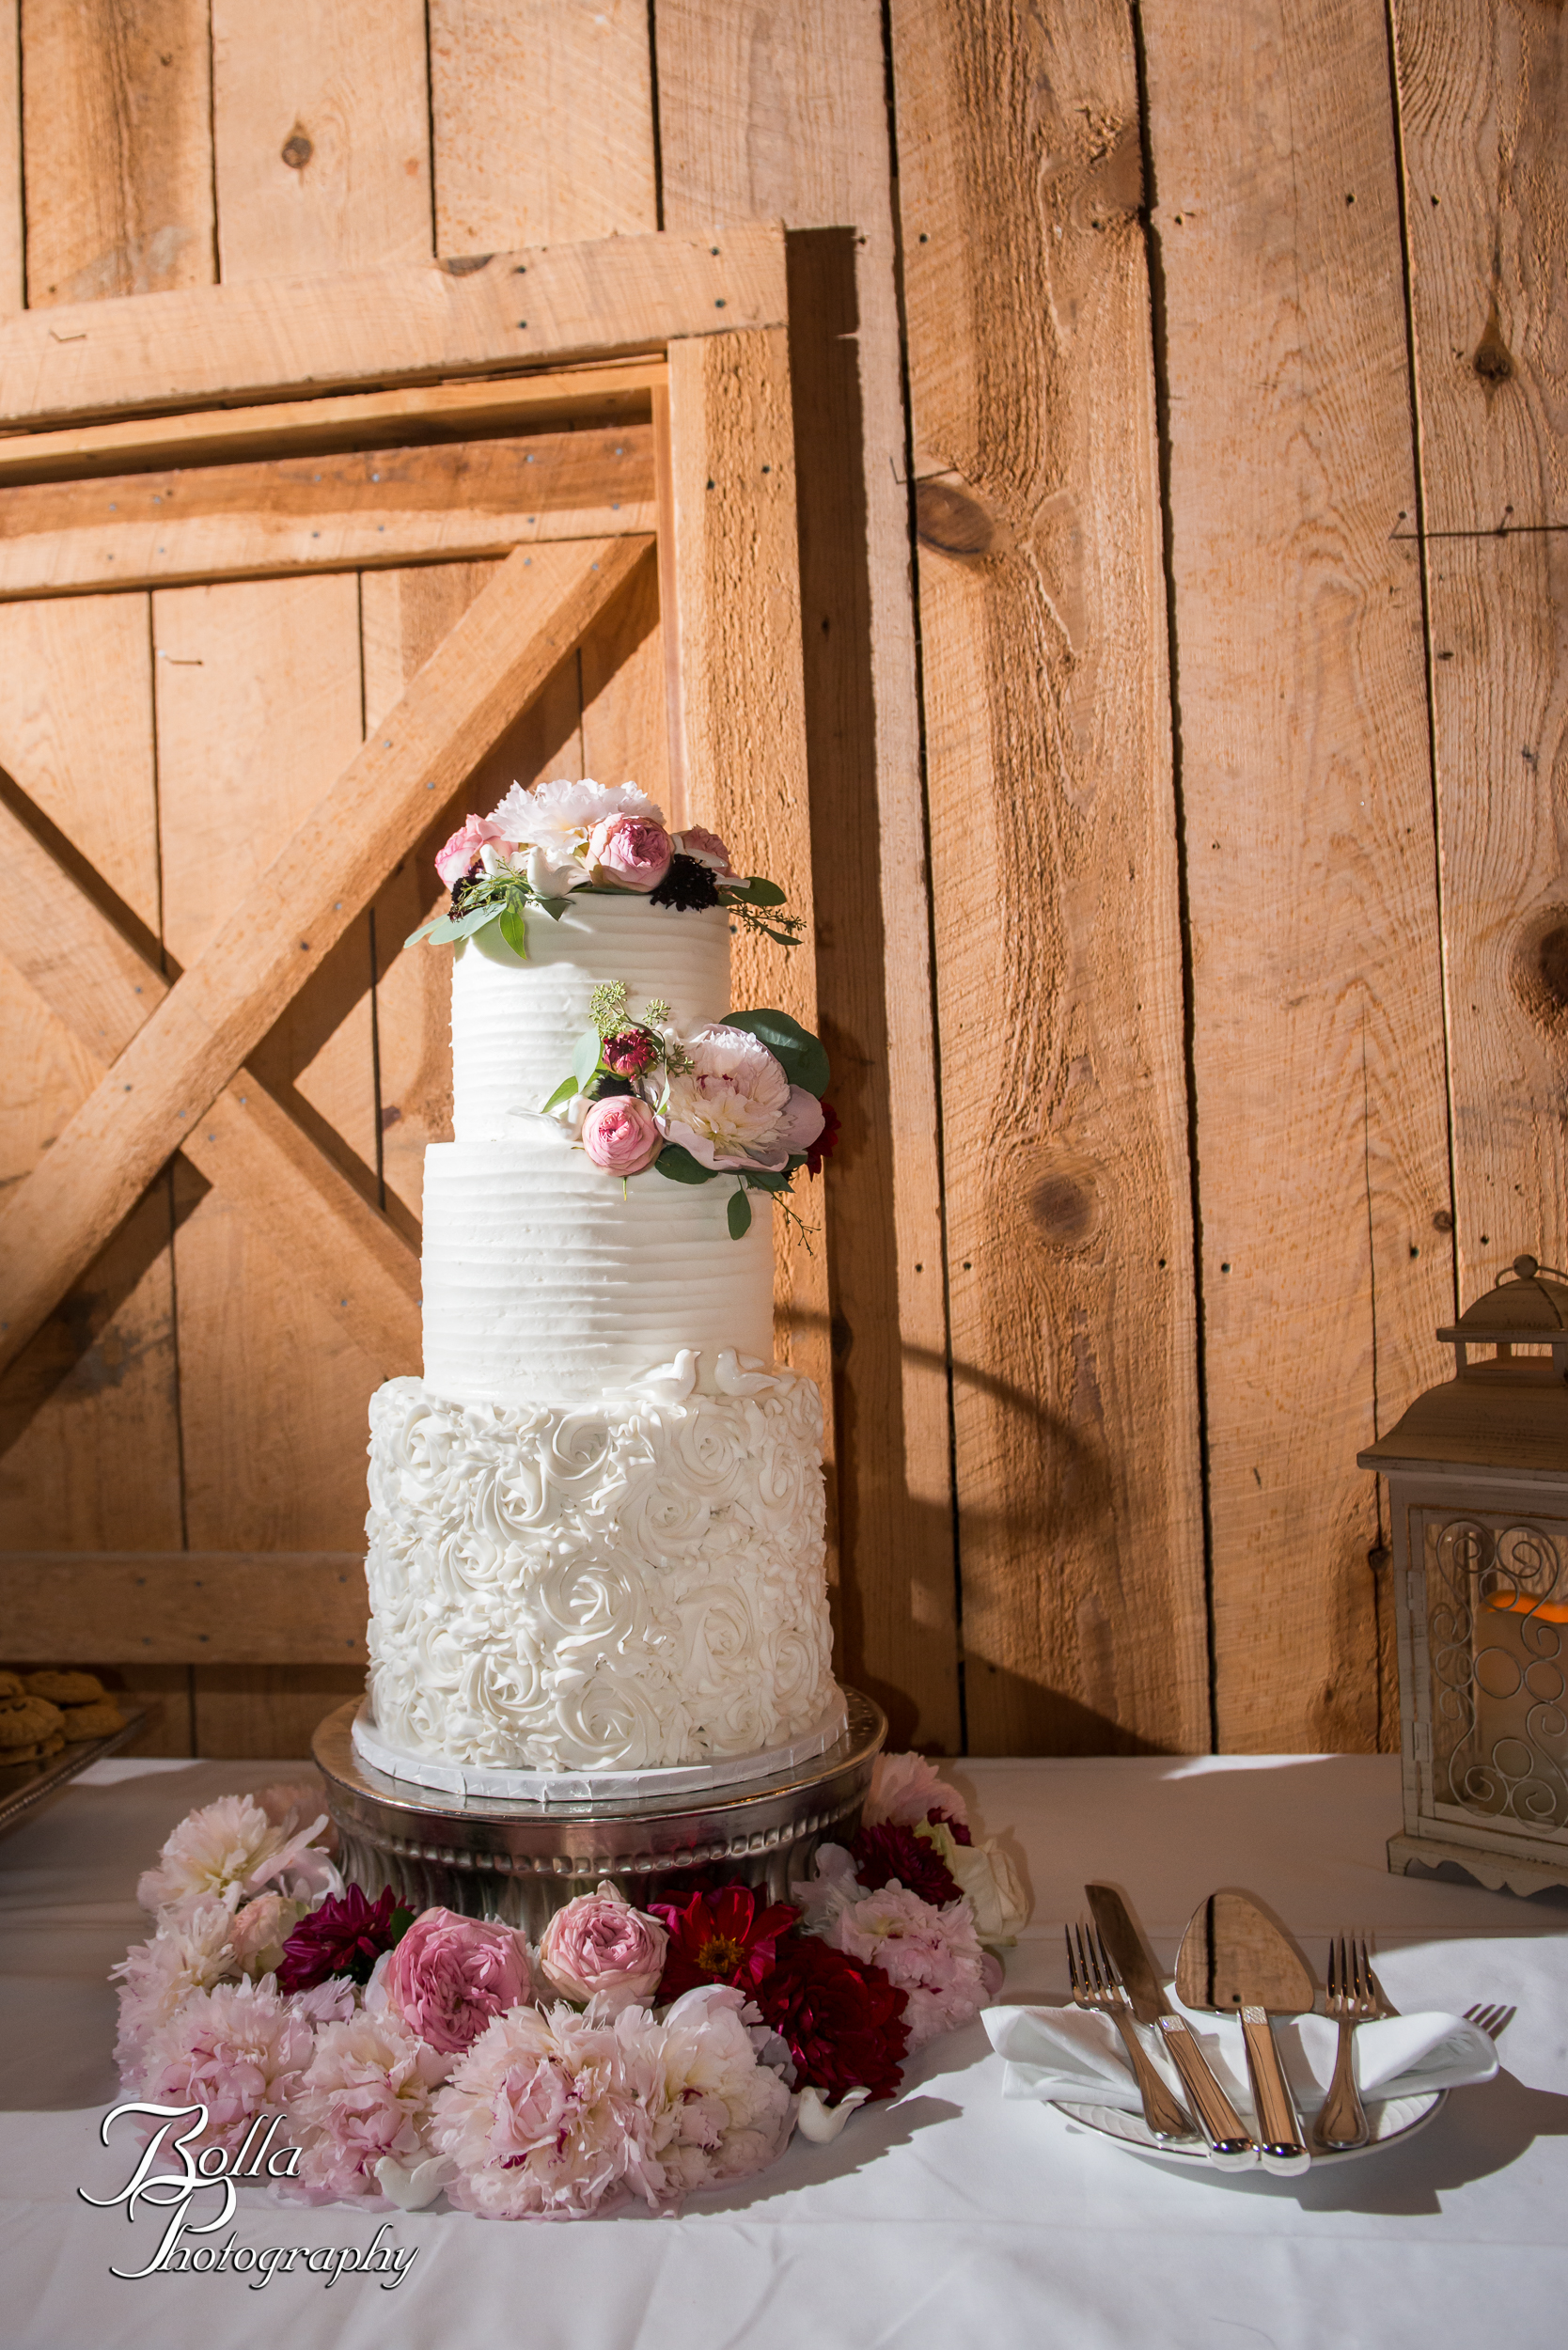 Bolla_photography_edwardsville_wedding_photographer_st_louis_weddings_Chaumette_winery_Mikusch-0495.jpg